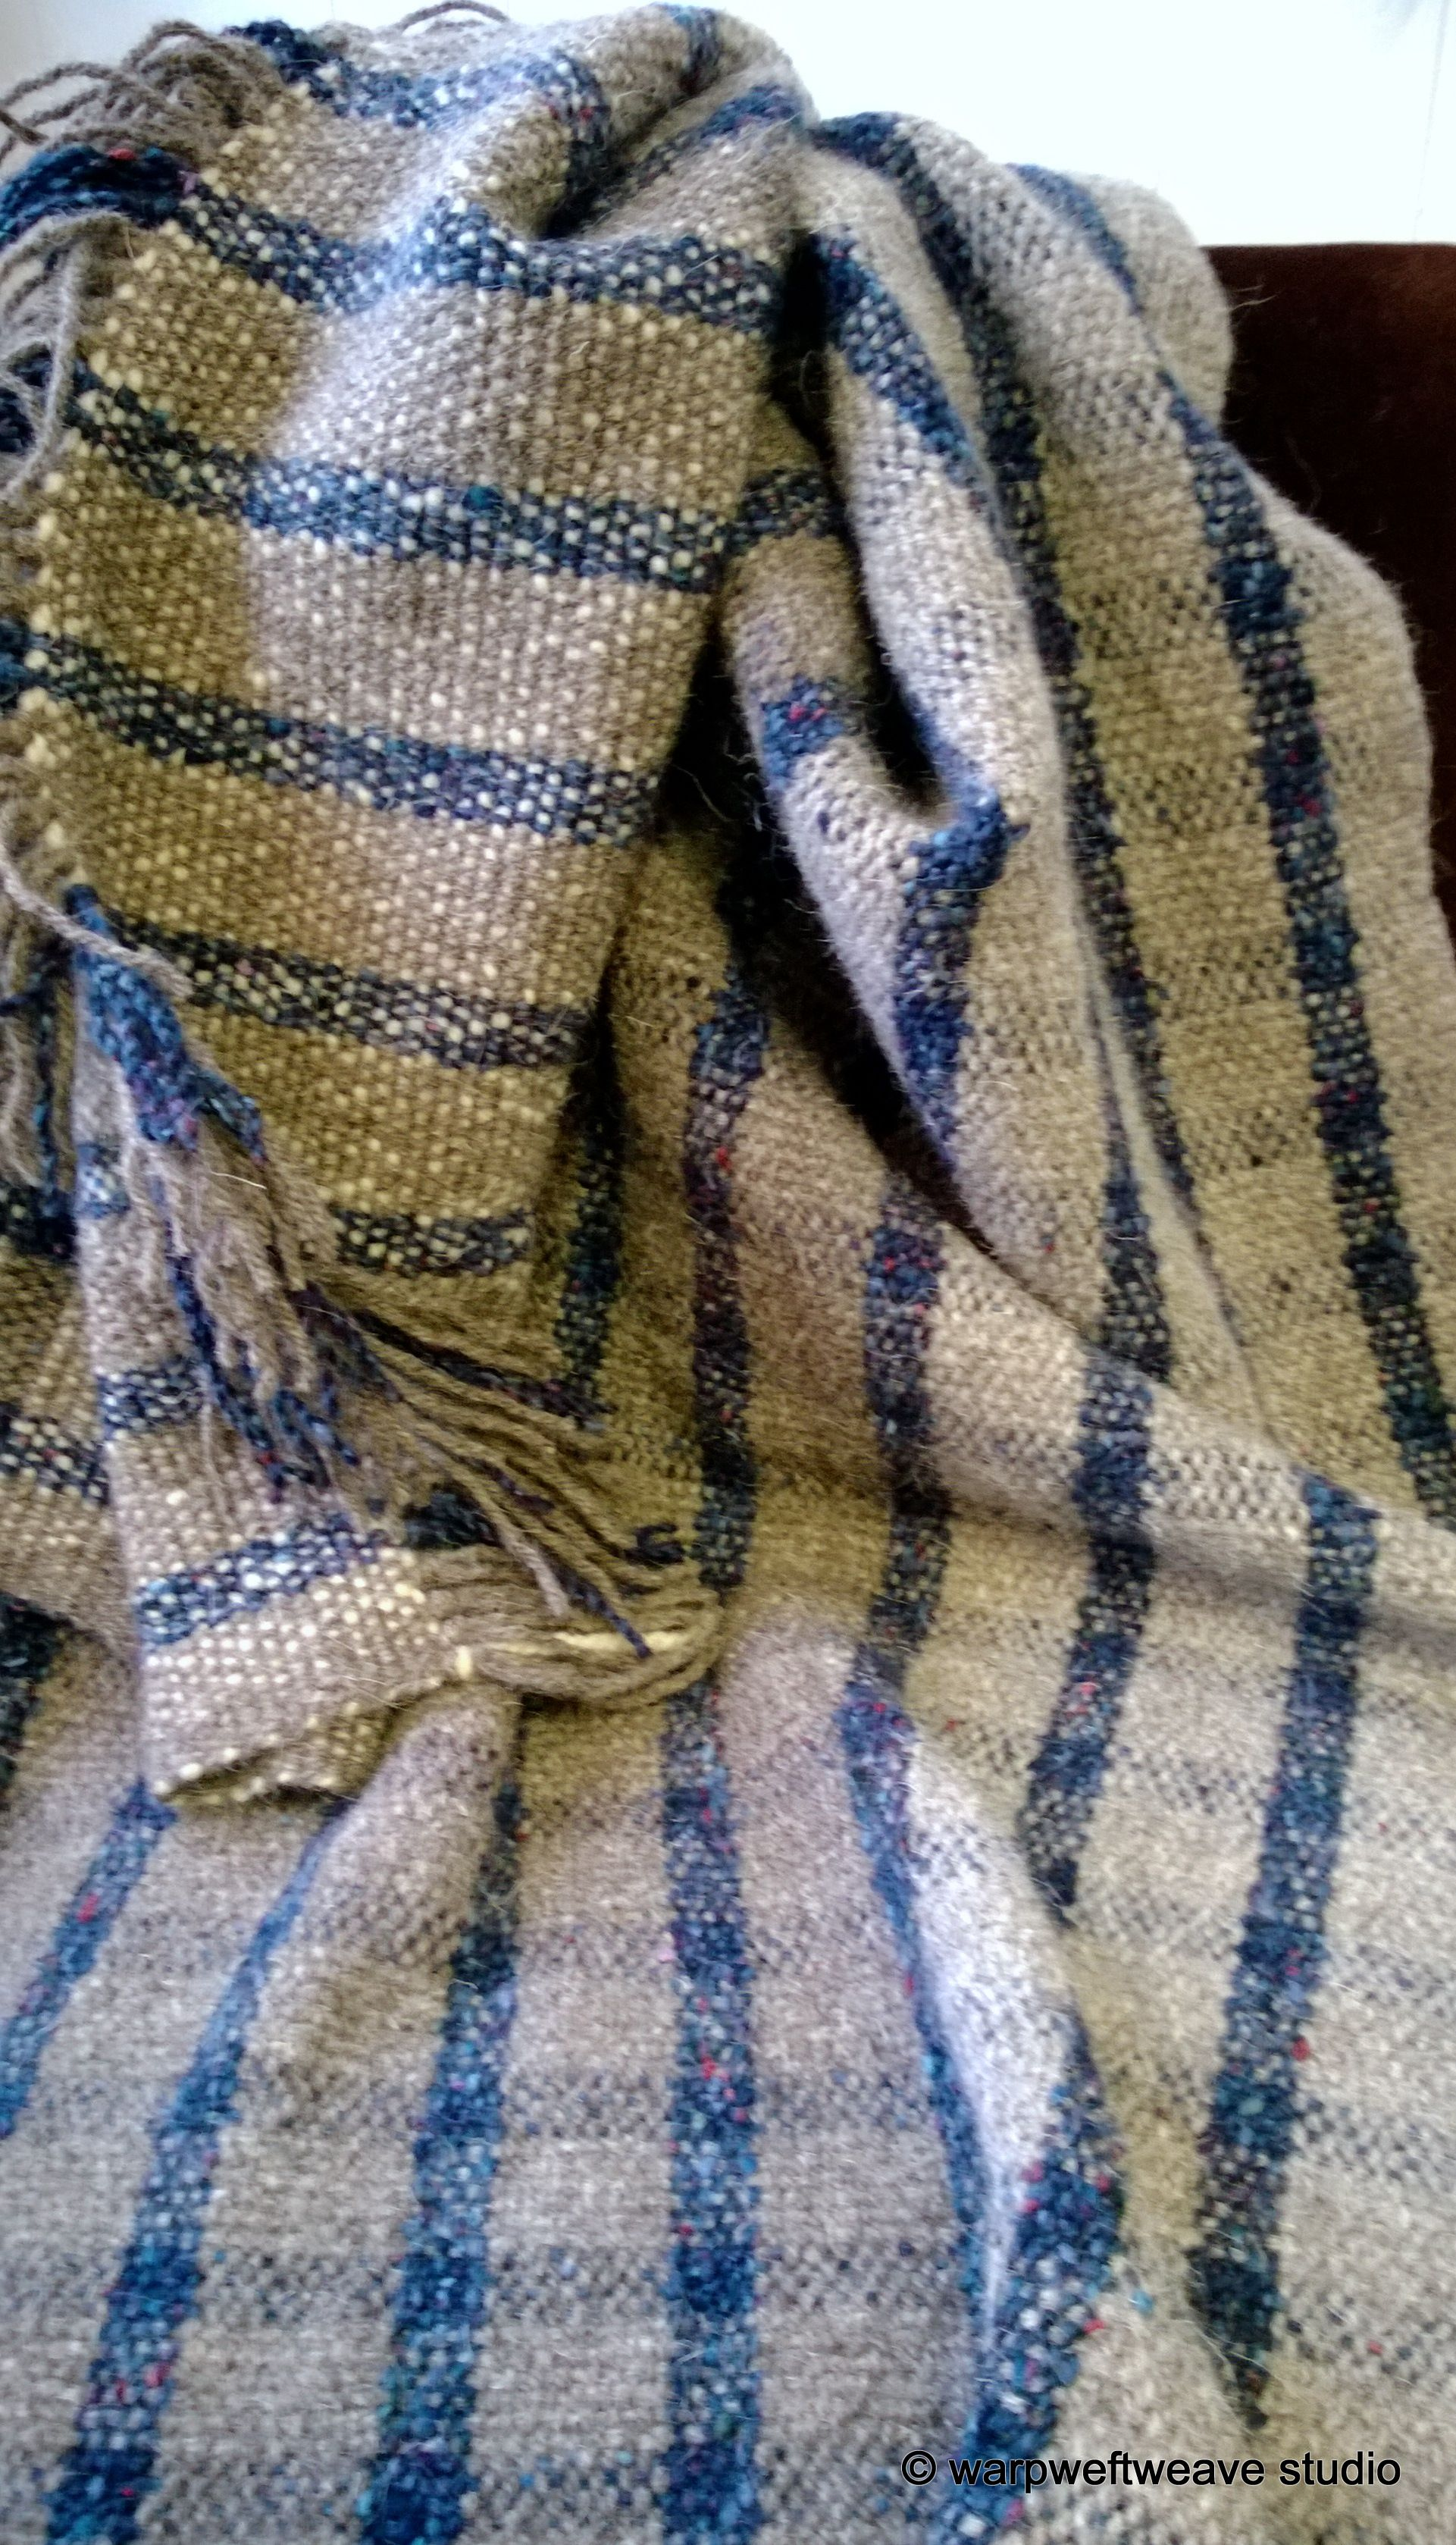 Hand-Woven Herdwick Blanket. For Sale £140 Pure Herdwick Bed/Chair throw Grey and White Herdwick with Blue Fibre mix.